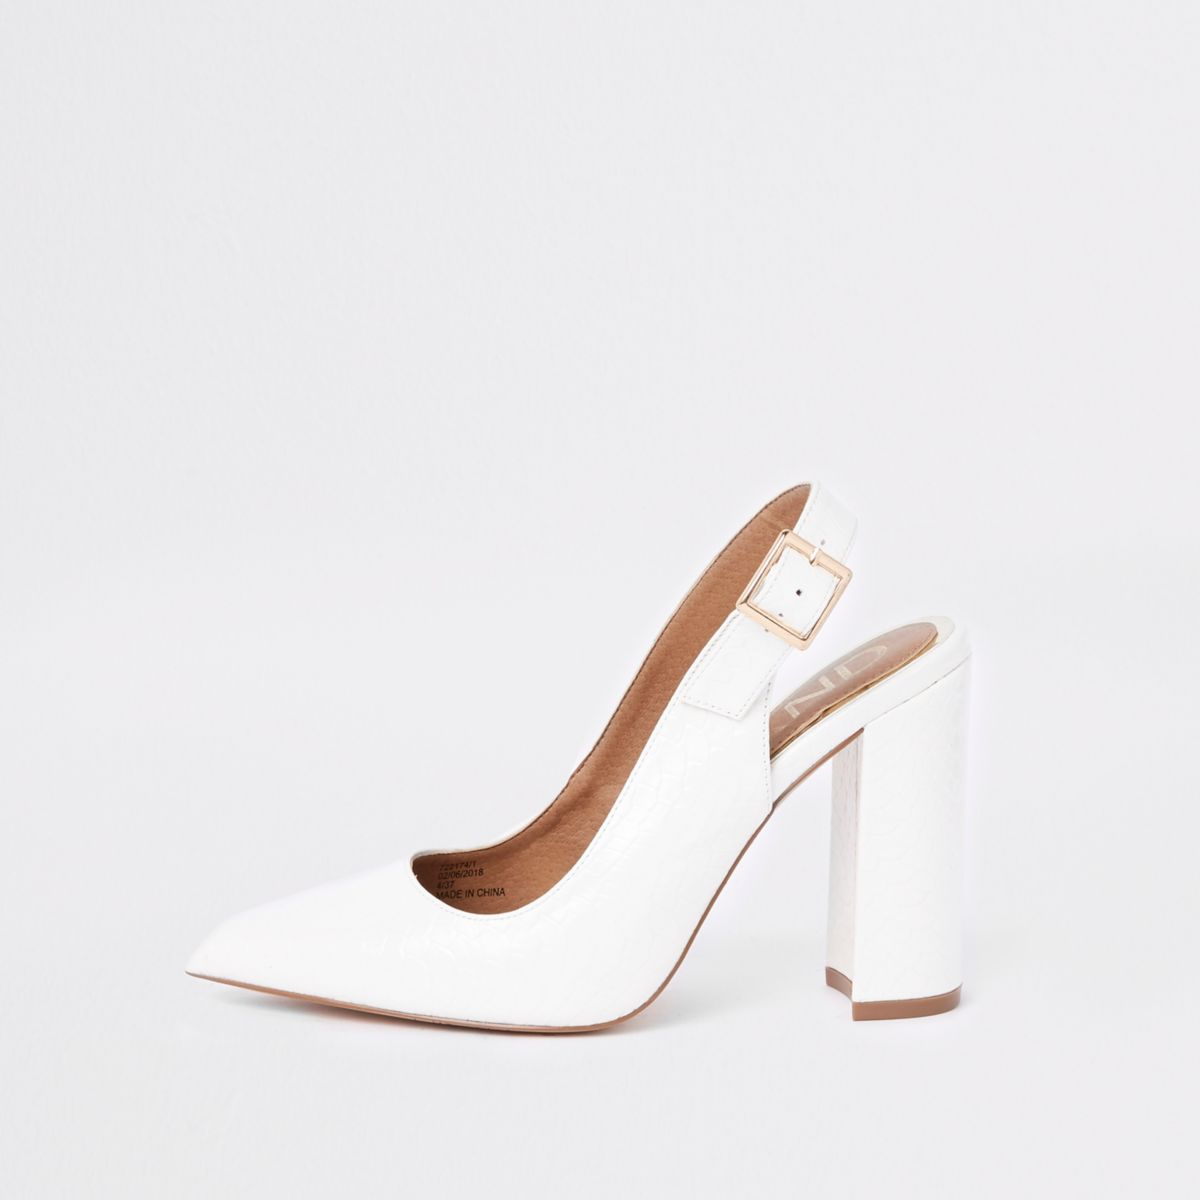 White croc embossed sling back pumps